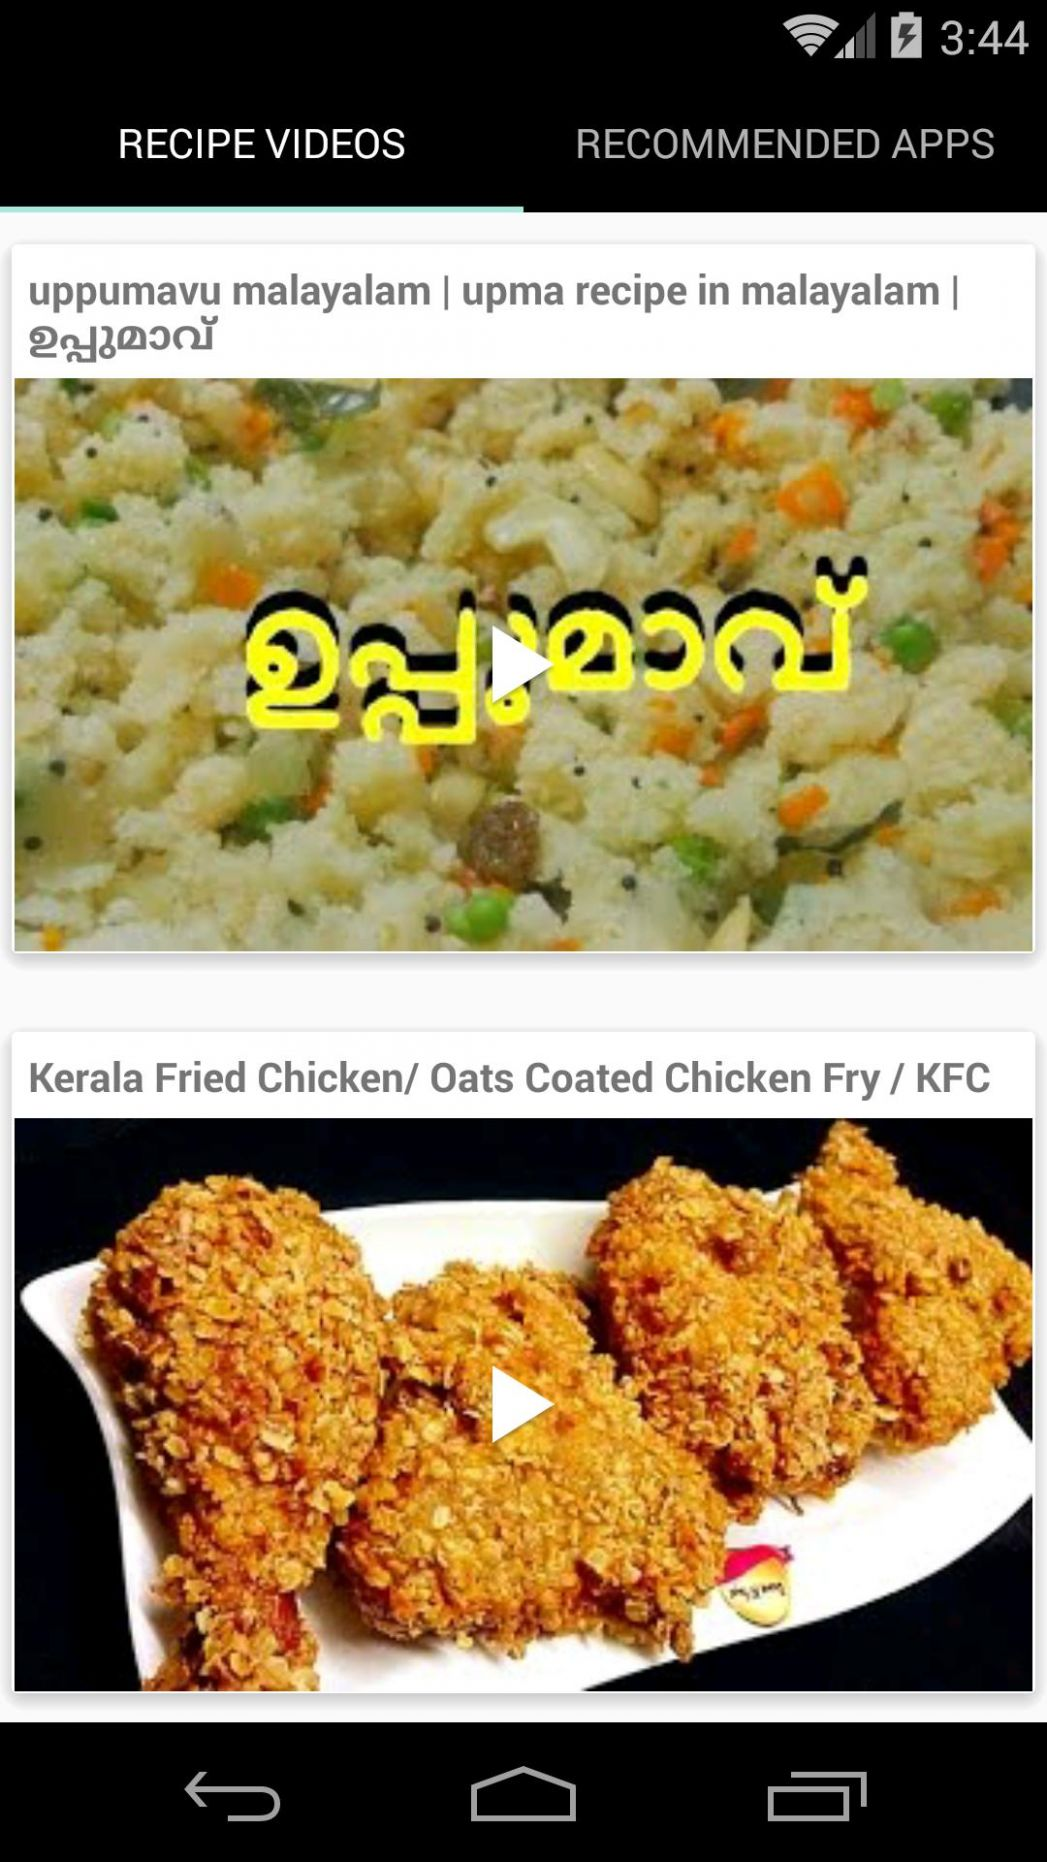 Cooking Recipes in Malayalam for Android - APK Download - Cooking Recipes In Malayalam